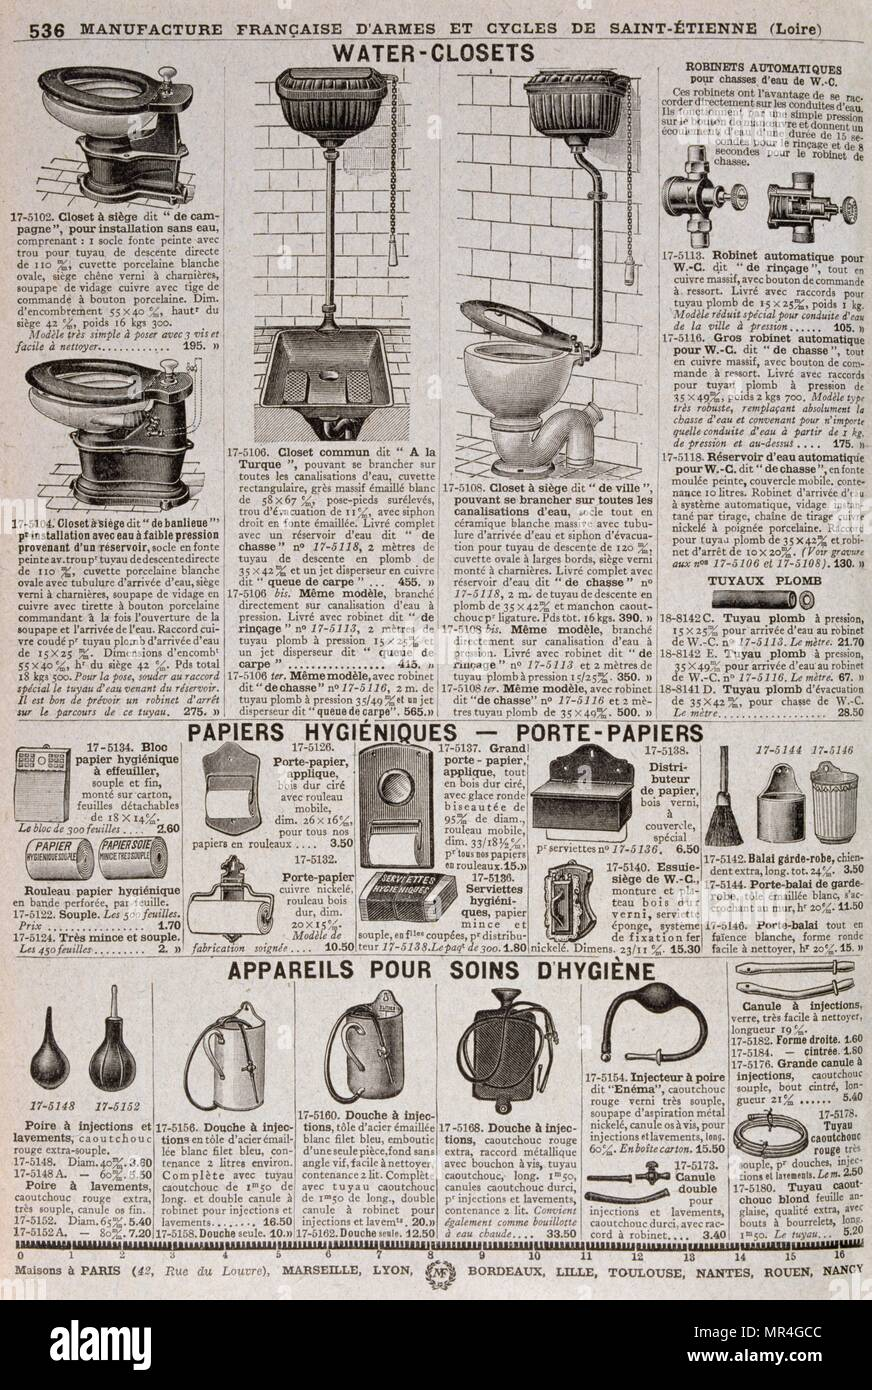 Catalogue of advertisements for modern toilet (lavatory) units 1900 - Stock Image